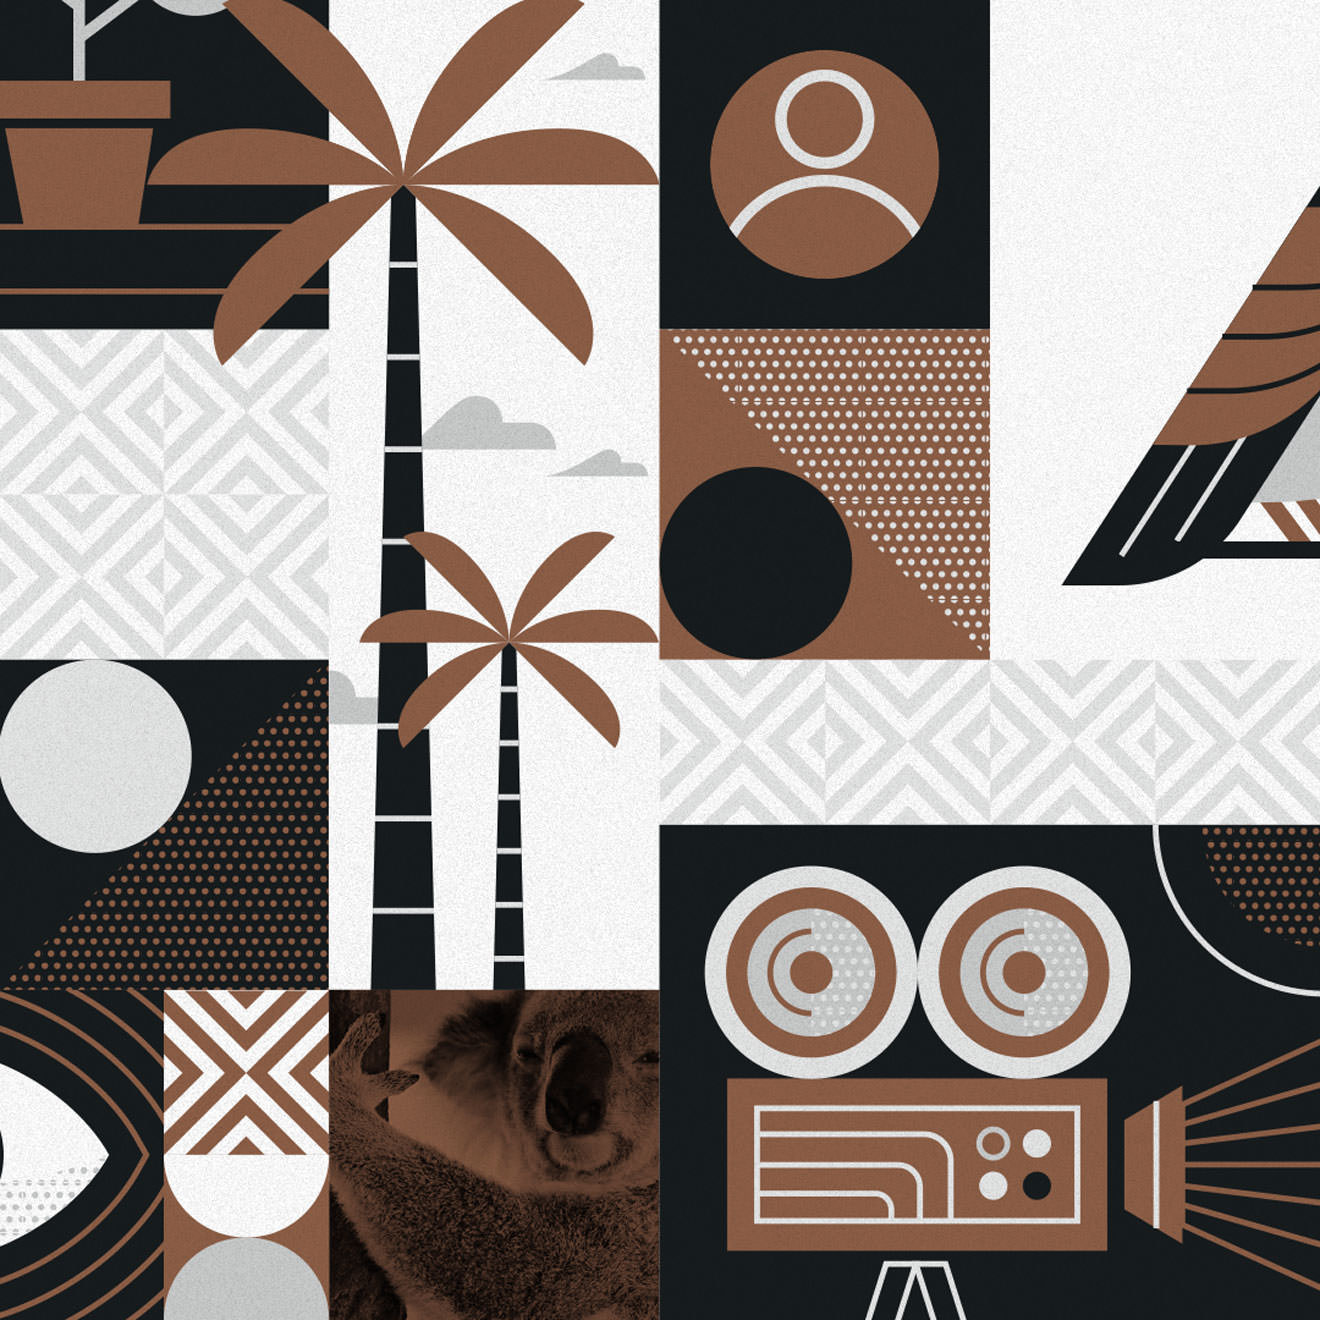 Brown, grey and white geometric illustration featuring a palm tree, a film reel, a koala